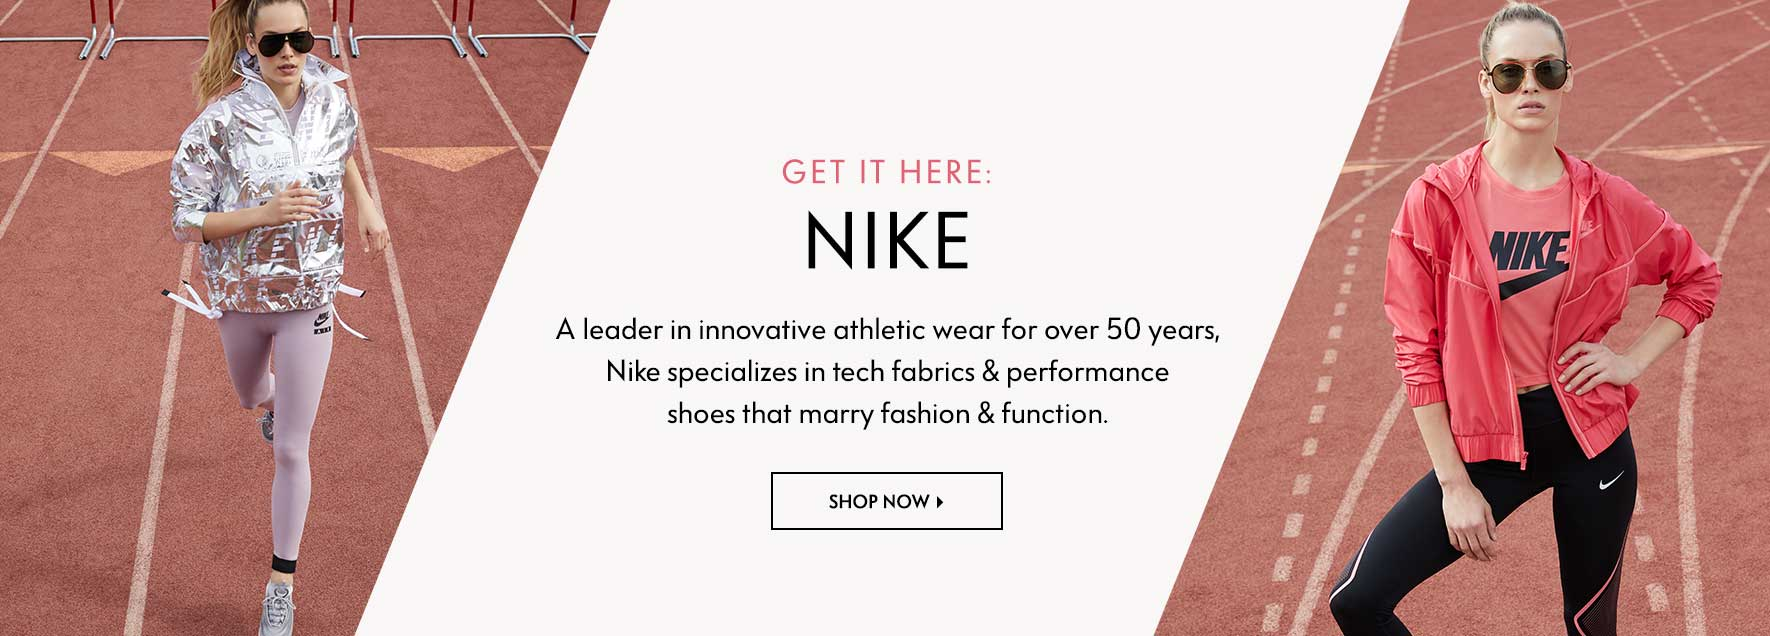 Get It Here: Nike - A learder in innovative athletic wear for over 50 years, Nike specializes in tech fabrics & performance shoes that marry fashion & function.